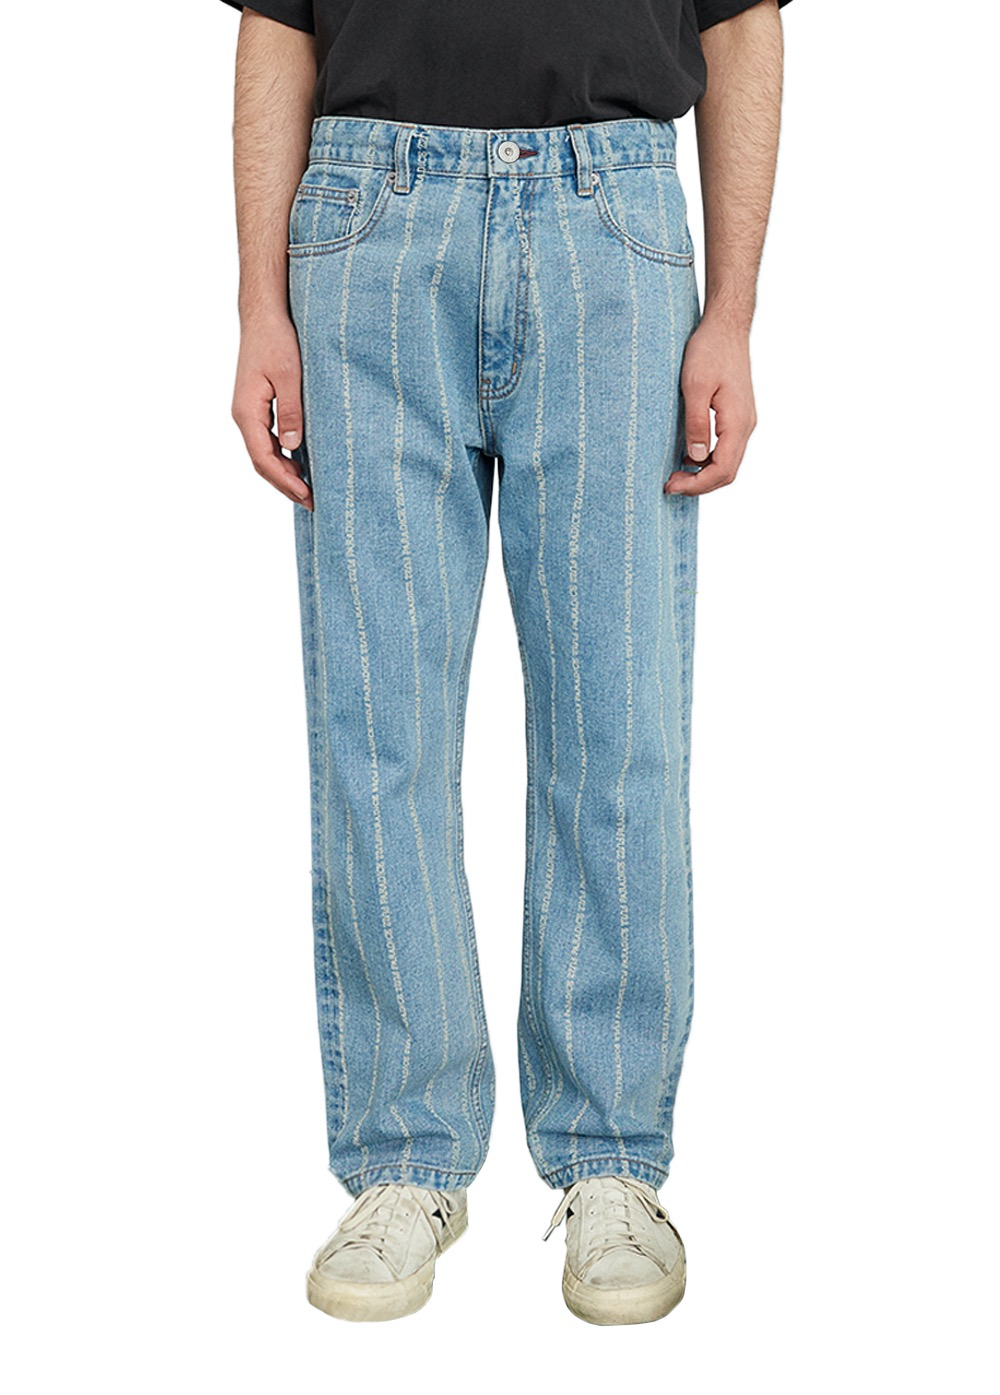 FUZZ 001 STONE WASHED STRIPE JEAN light blue